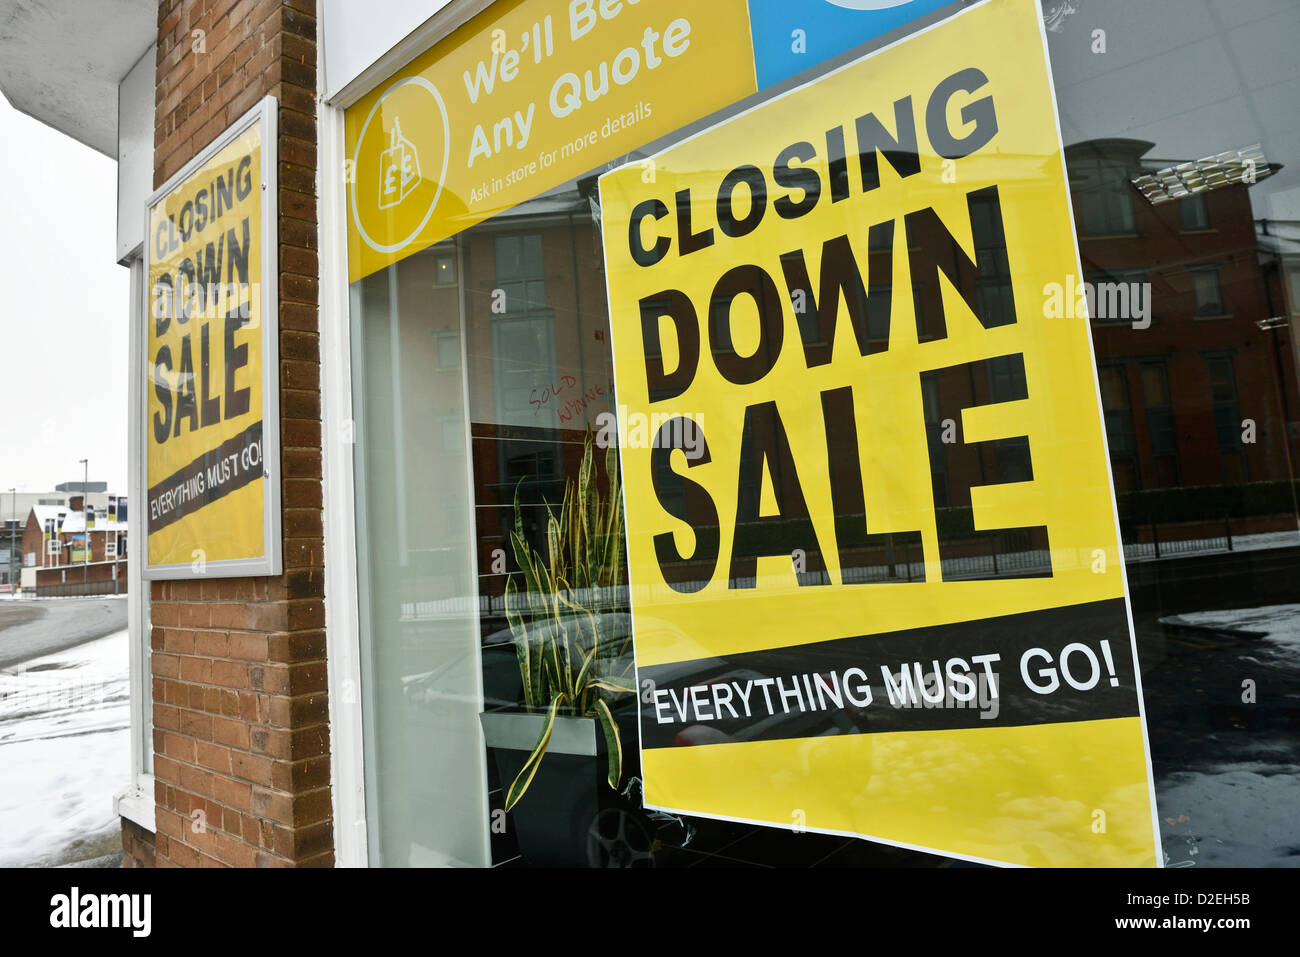 Closing down sale poster in a shop window - Stock Image